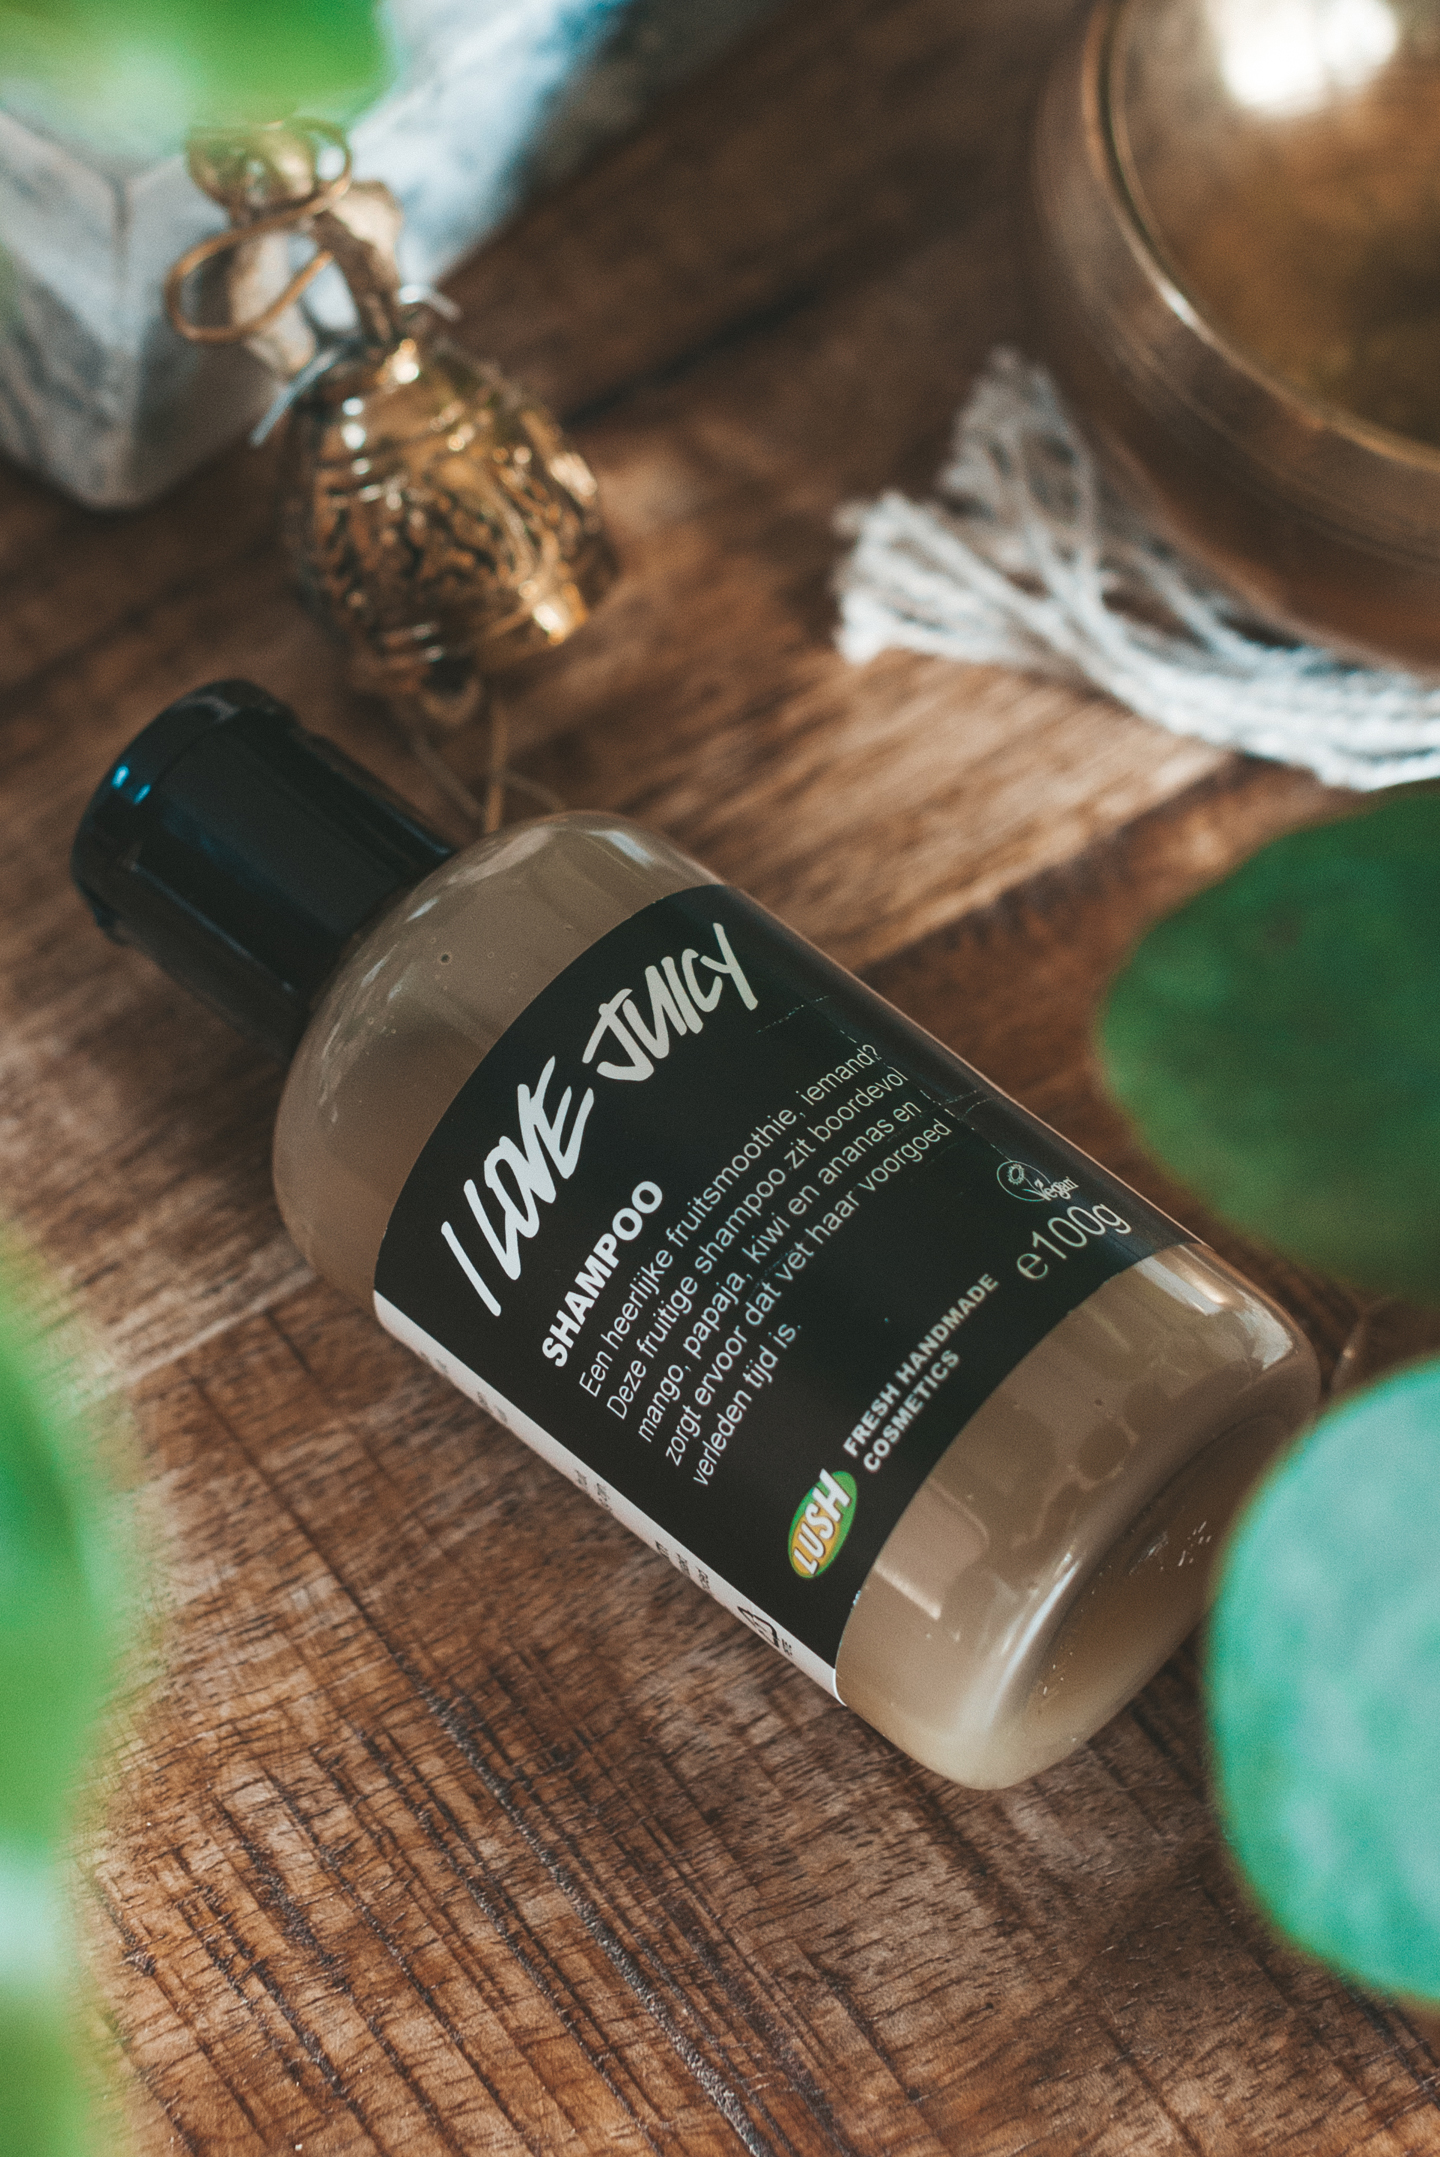 Lush vegan Haircare I Love Juicy shampoo